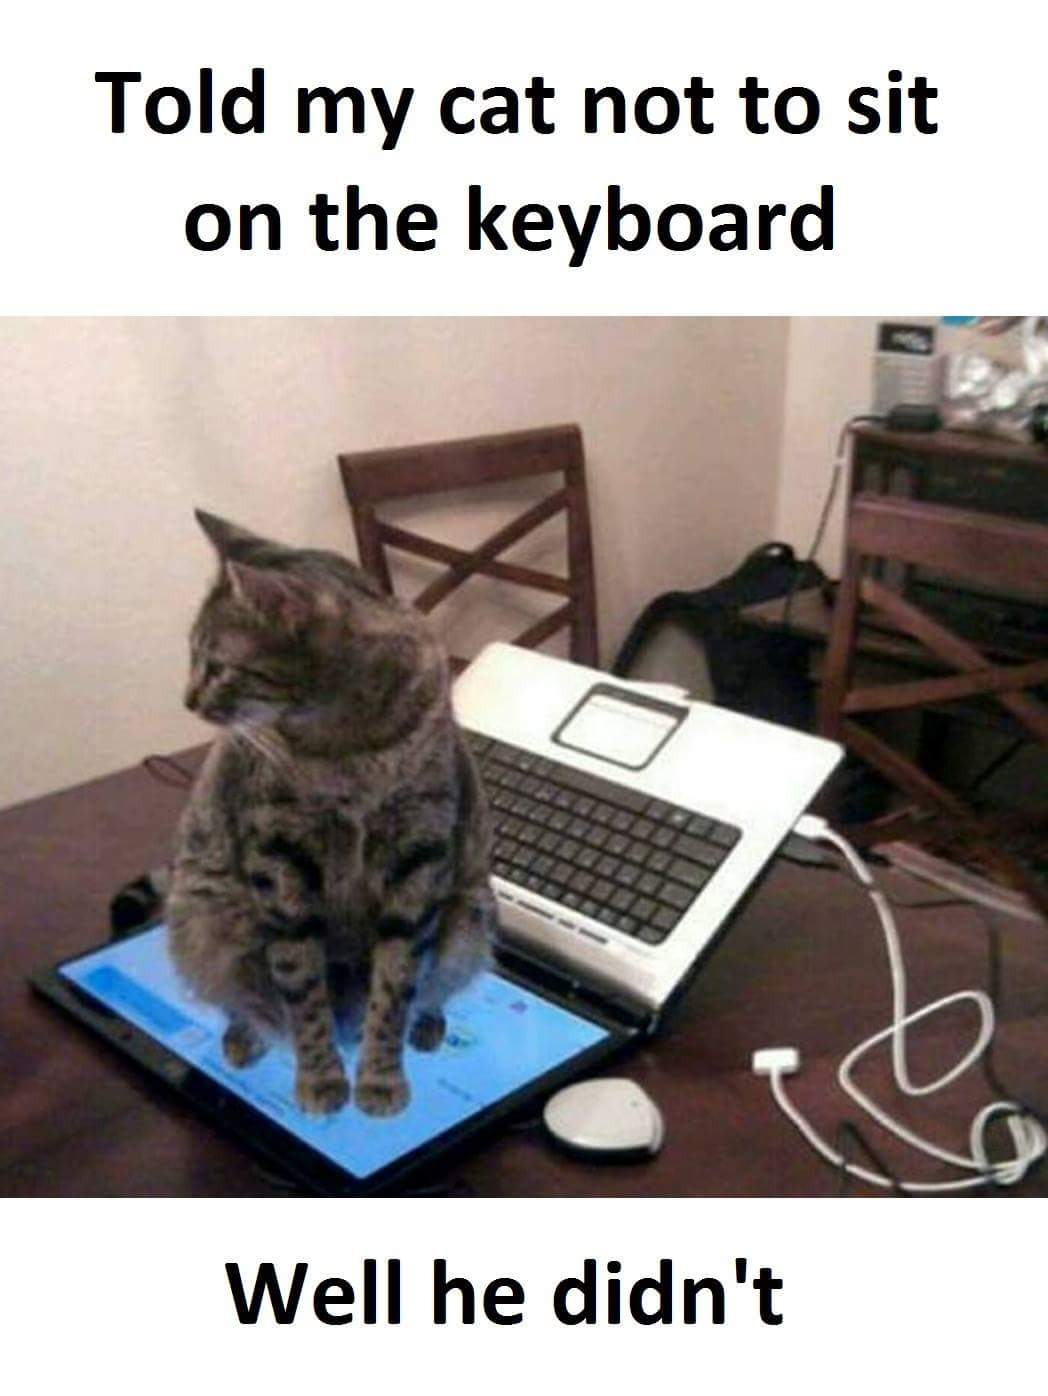 Told my cat not to sit on the keyboard…